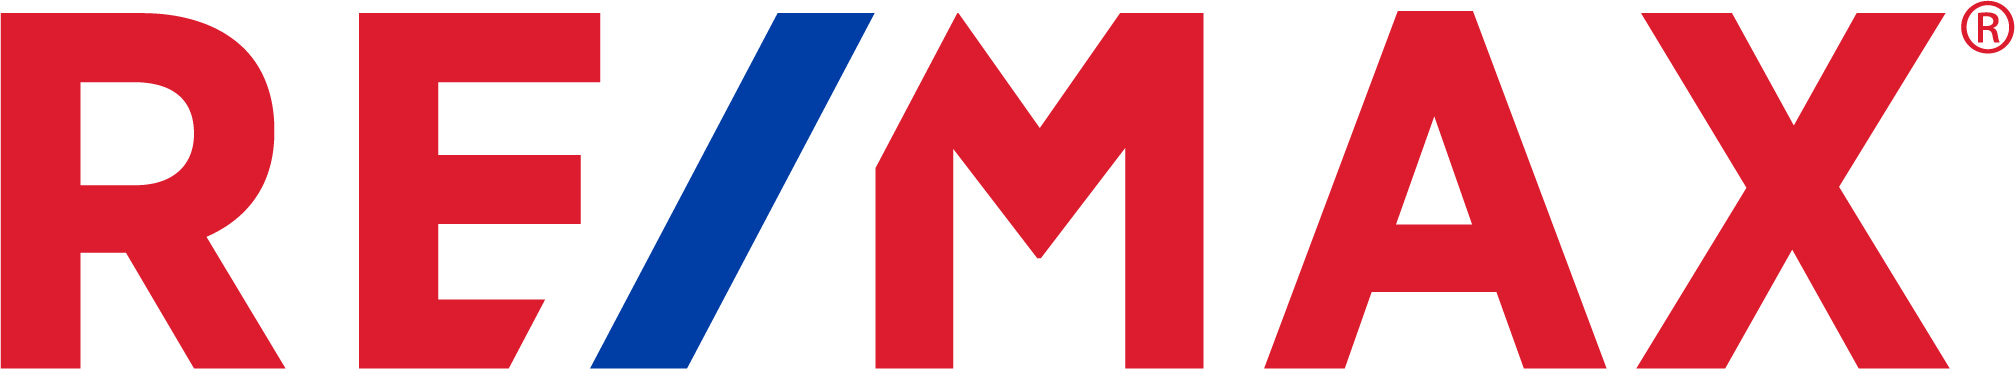 RE/MAX network